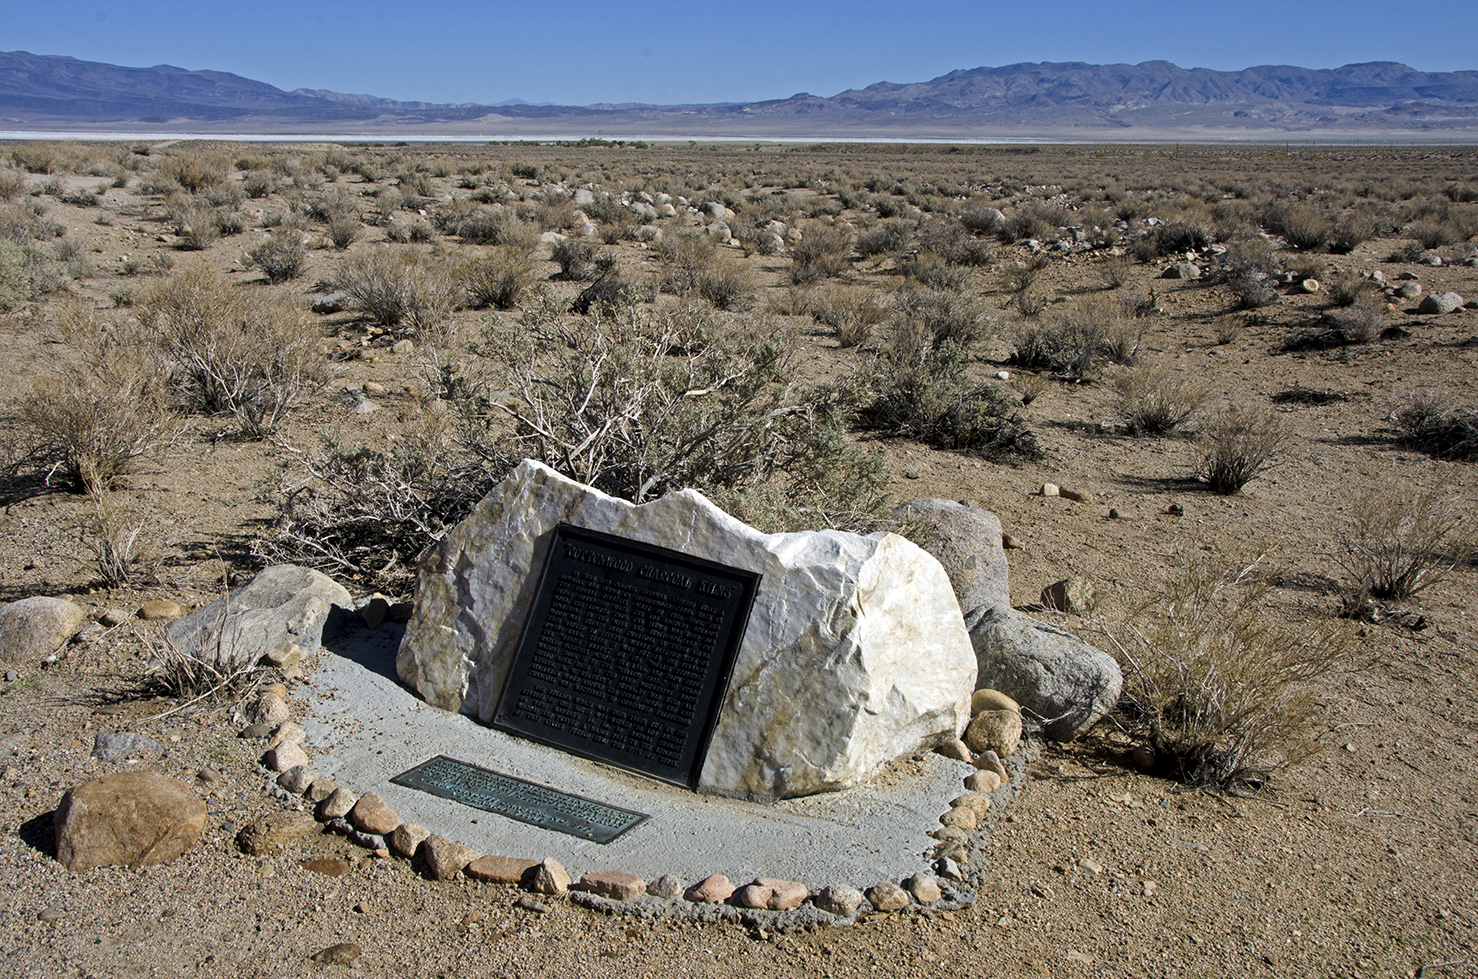 Cottonwood Charcoal Kilns Monument. Dry Owens Lake Bed in the distance.